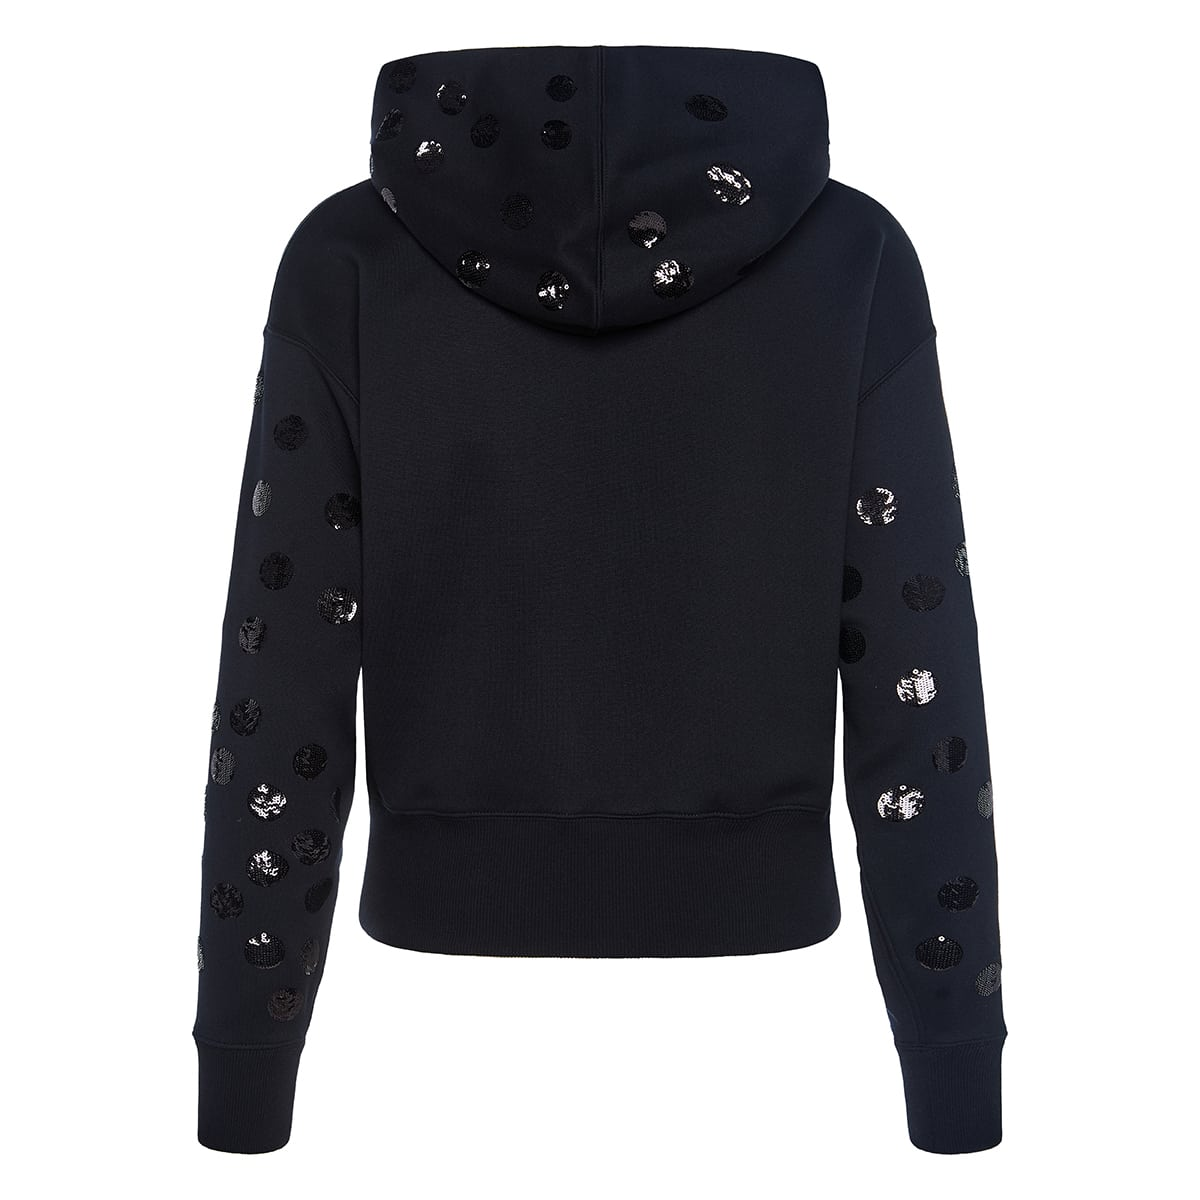 Hoodie with sequin polka dots